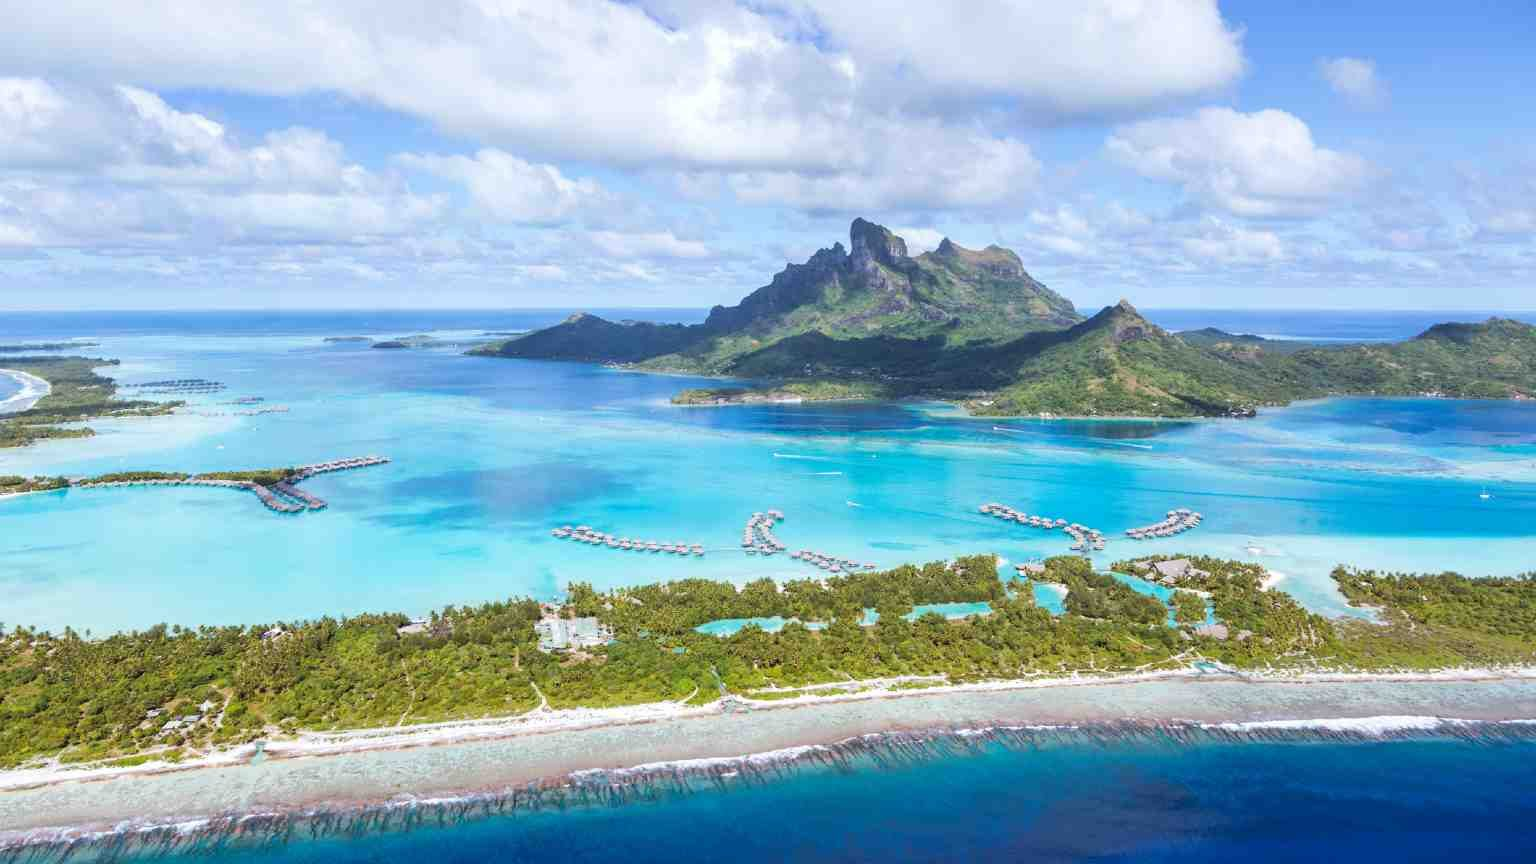 Aerial view of the lagoon in Bora Bora